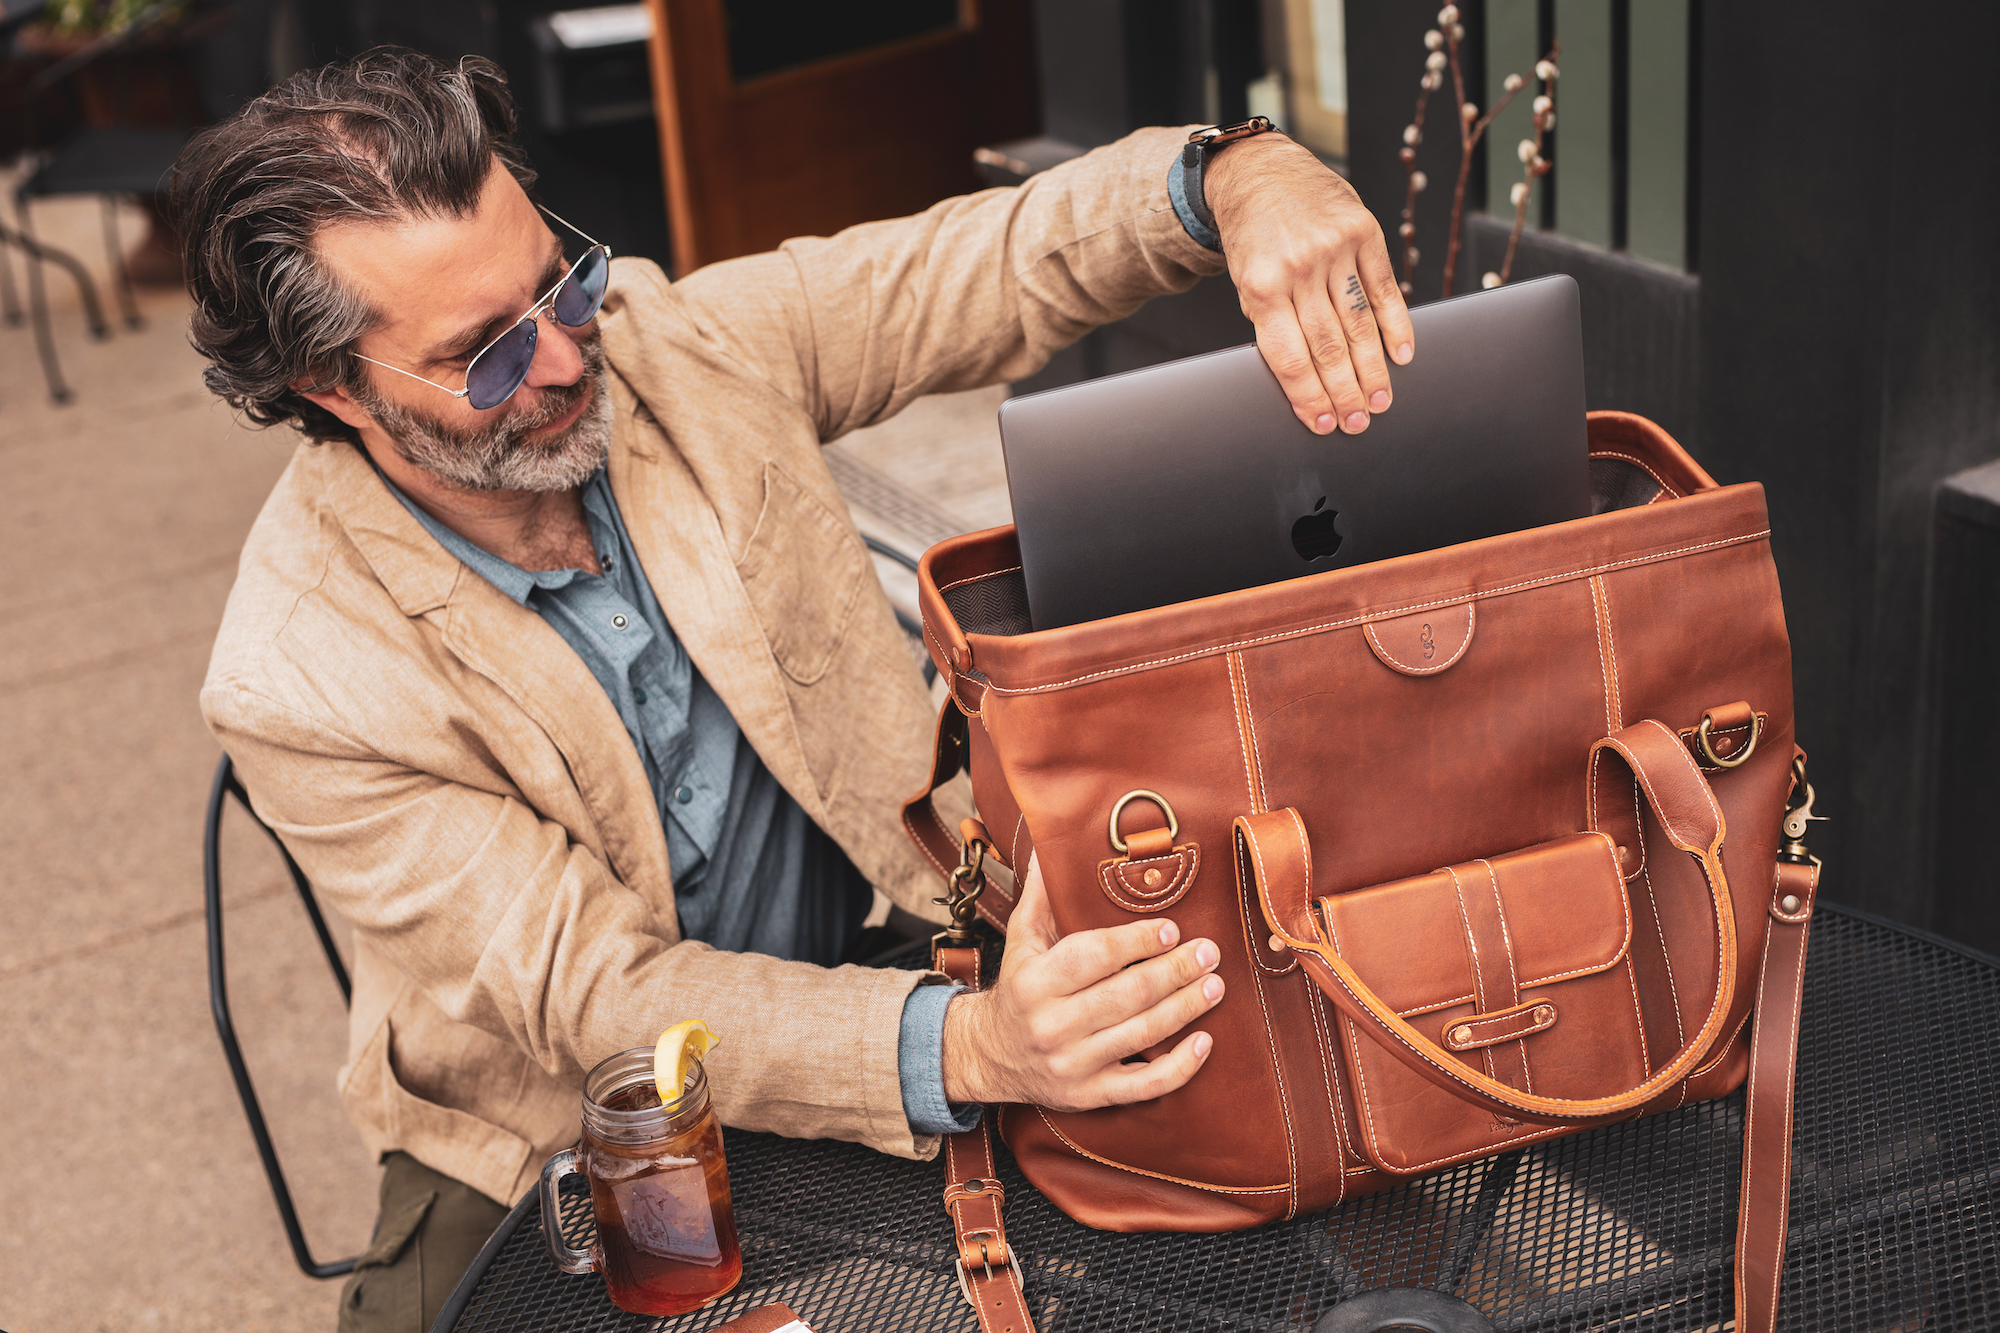 New leather MacBook bags from Pad & Quill